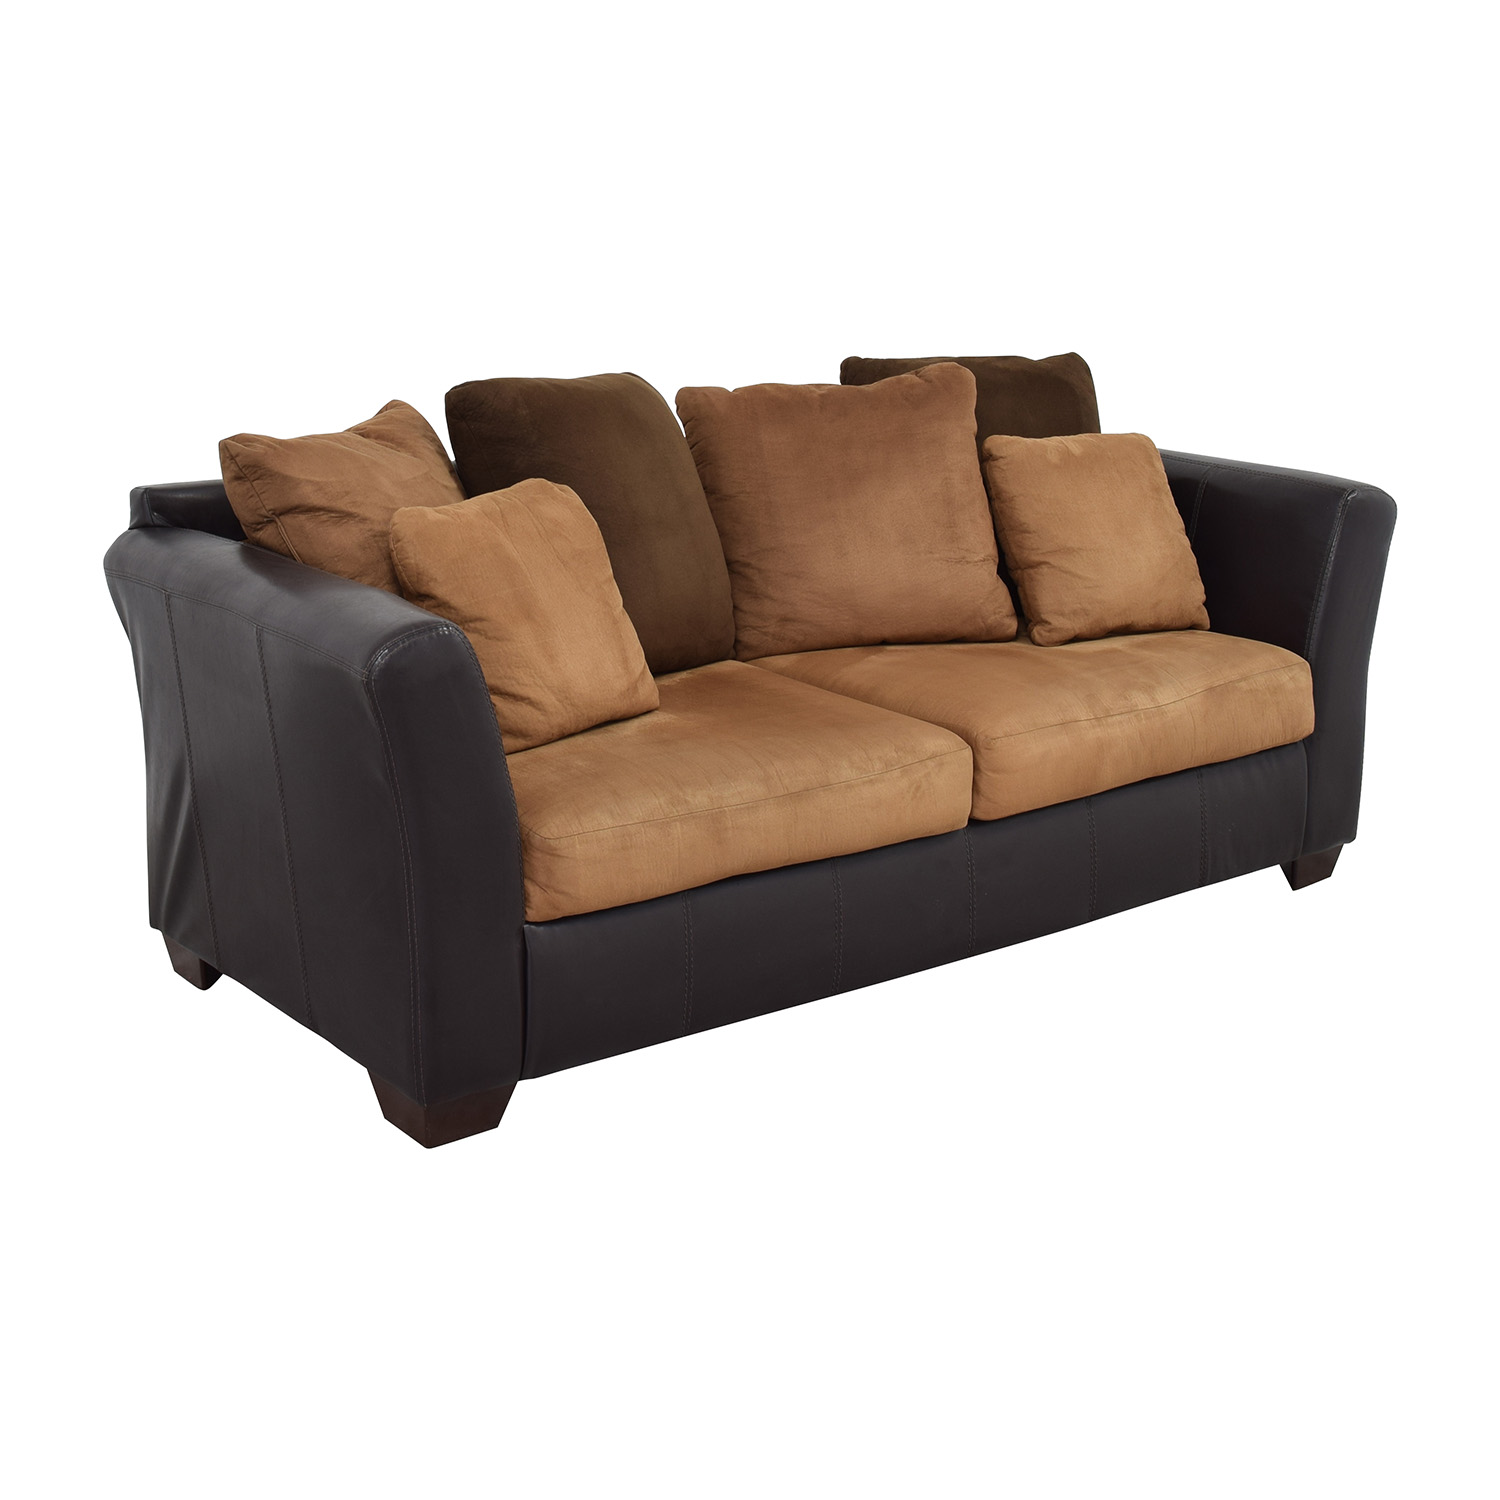 Ashley Furniture Sofa with Brown Throw Pillows / Classic Sofas